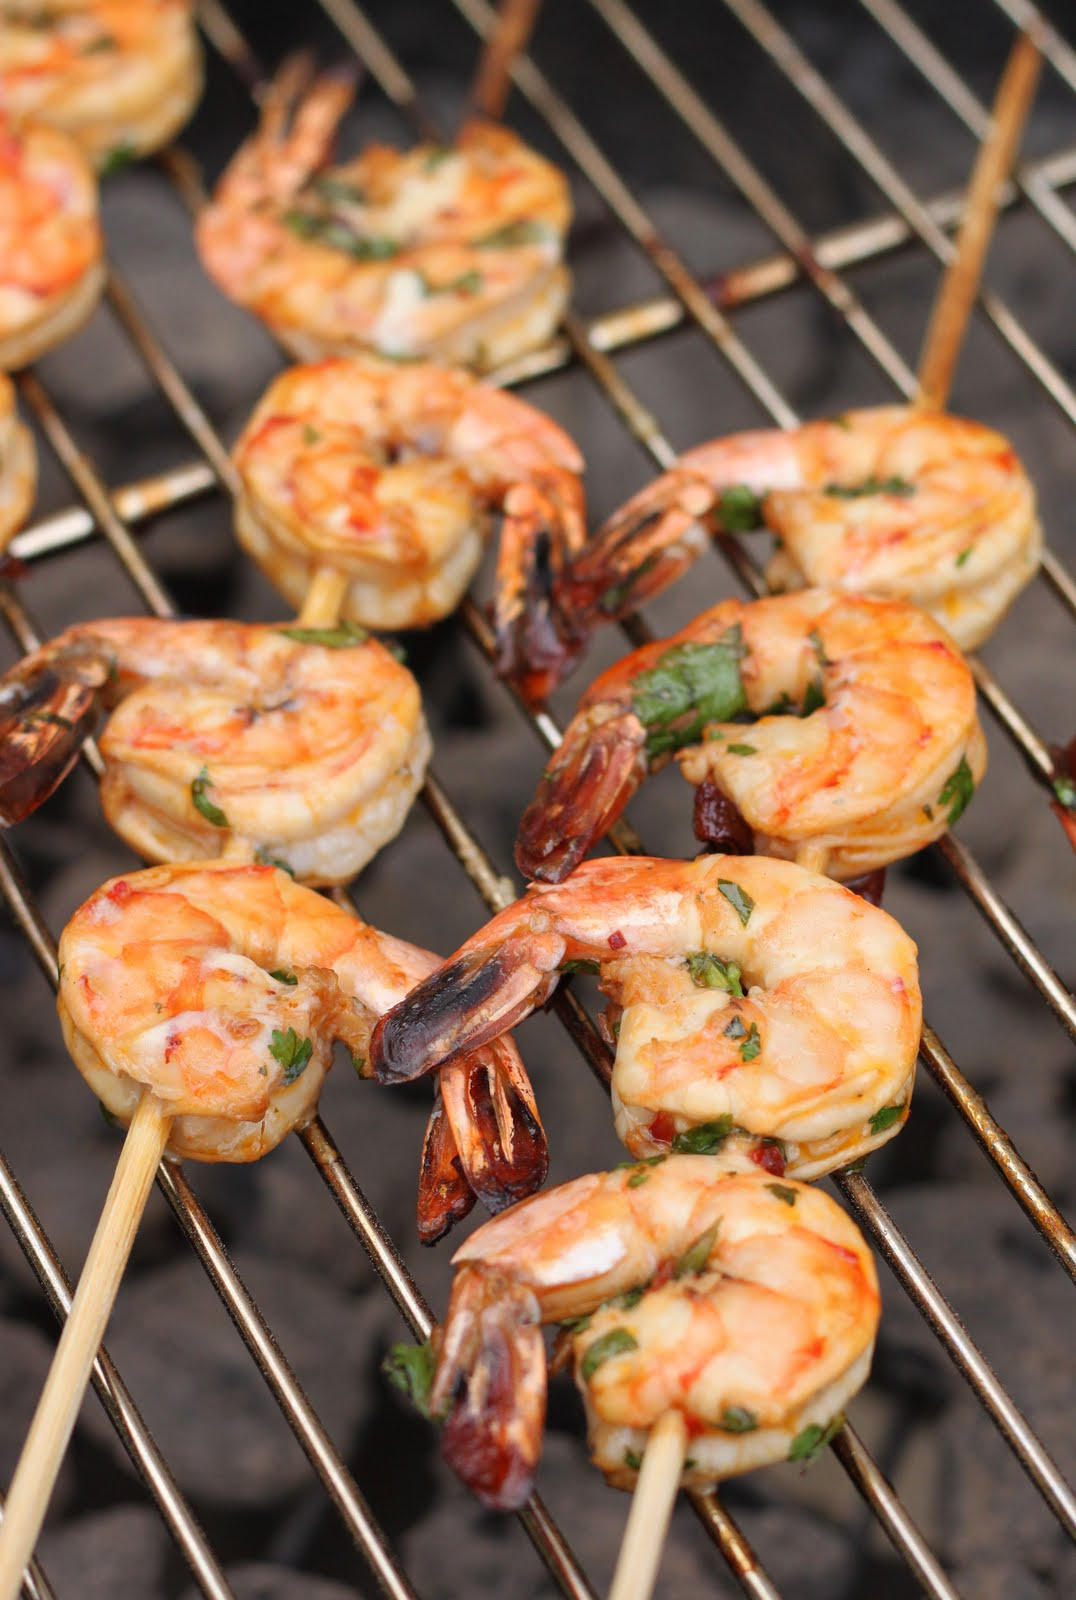 Skewered and marinated shrimp, with an orange hue from the ancho ...